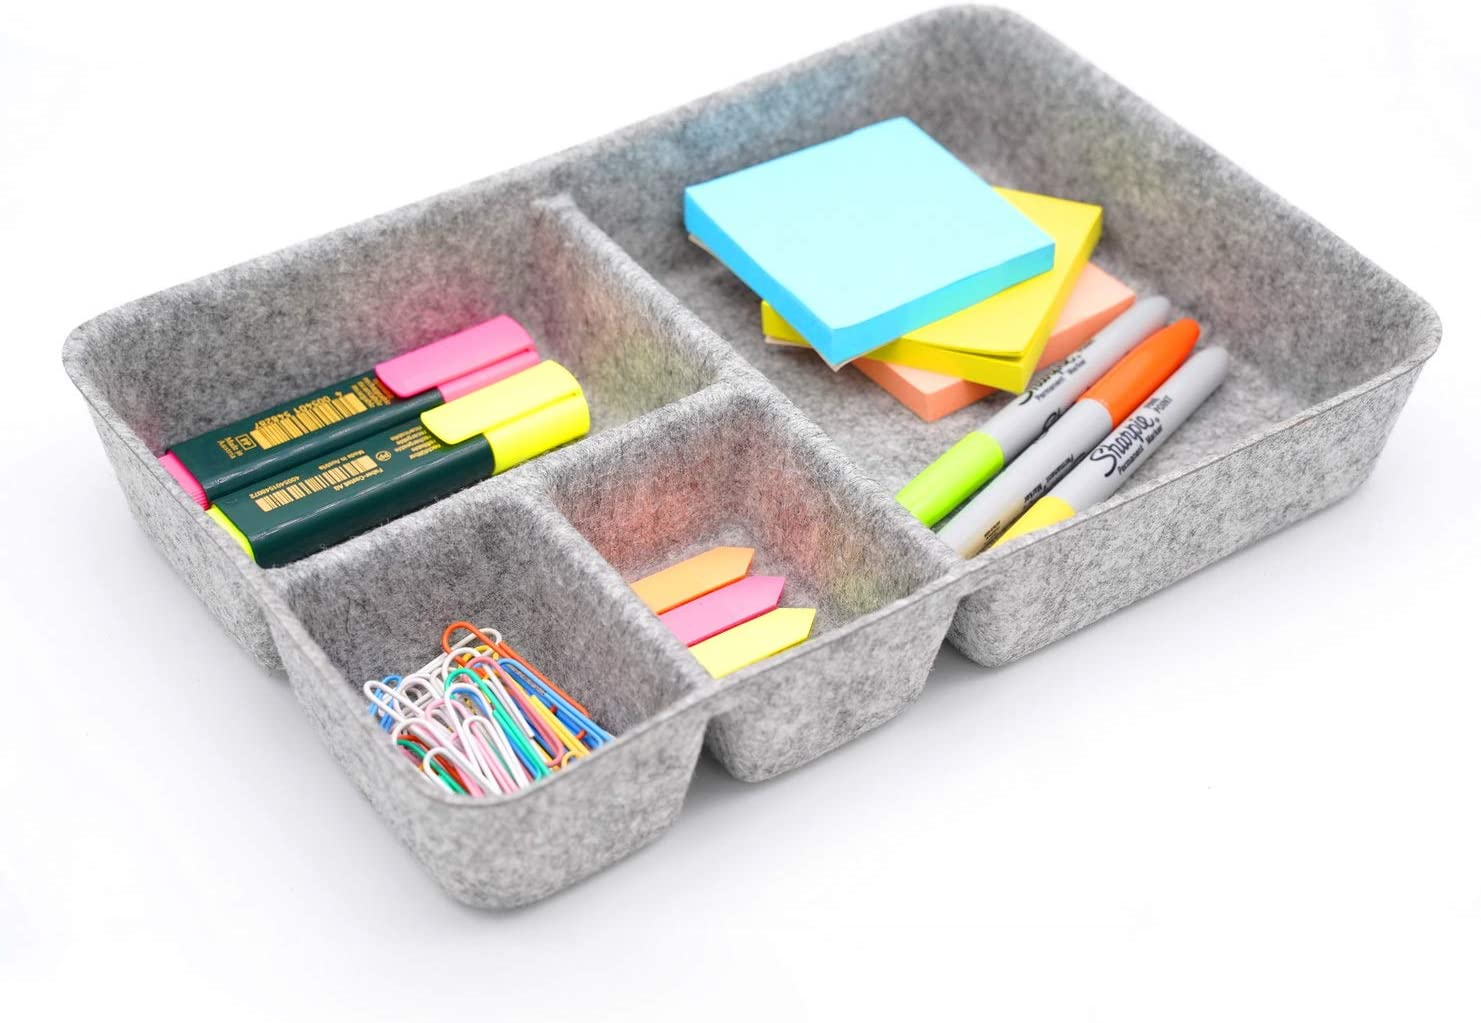 Welaxy Junk Drawer Organizer bin 4 Compartments Office organizers bins felt trays drawers 4 dividers Multi-Purpose Storage (gray)